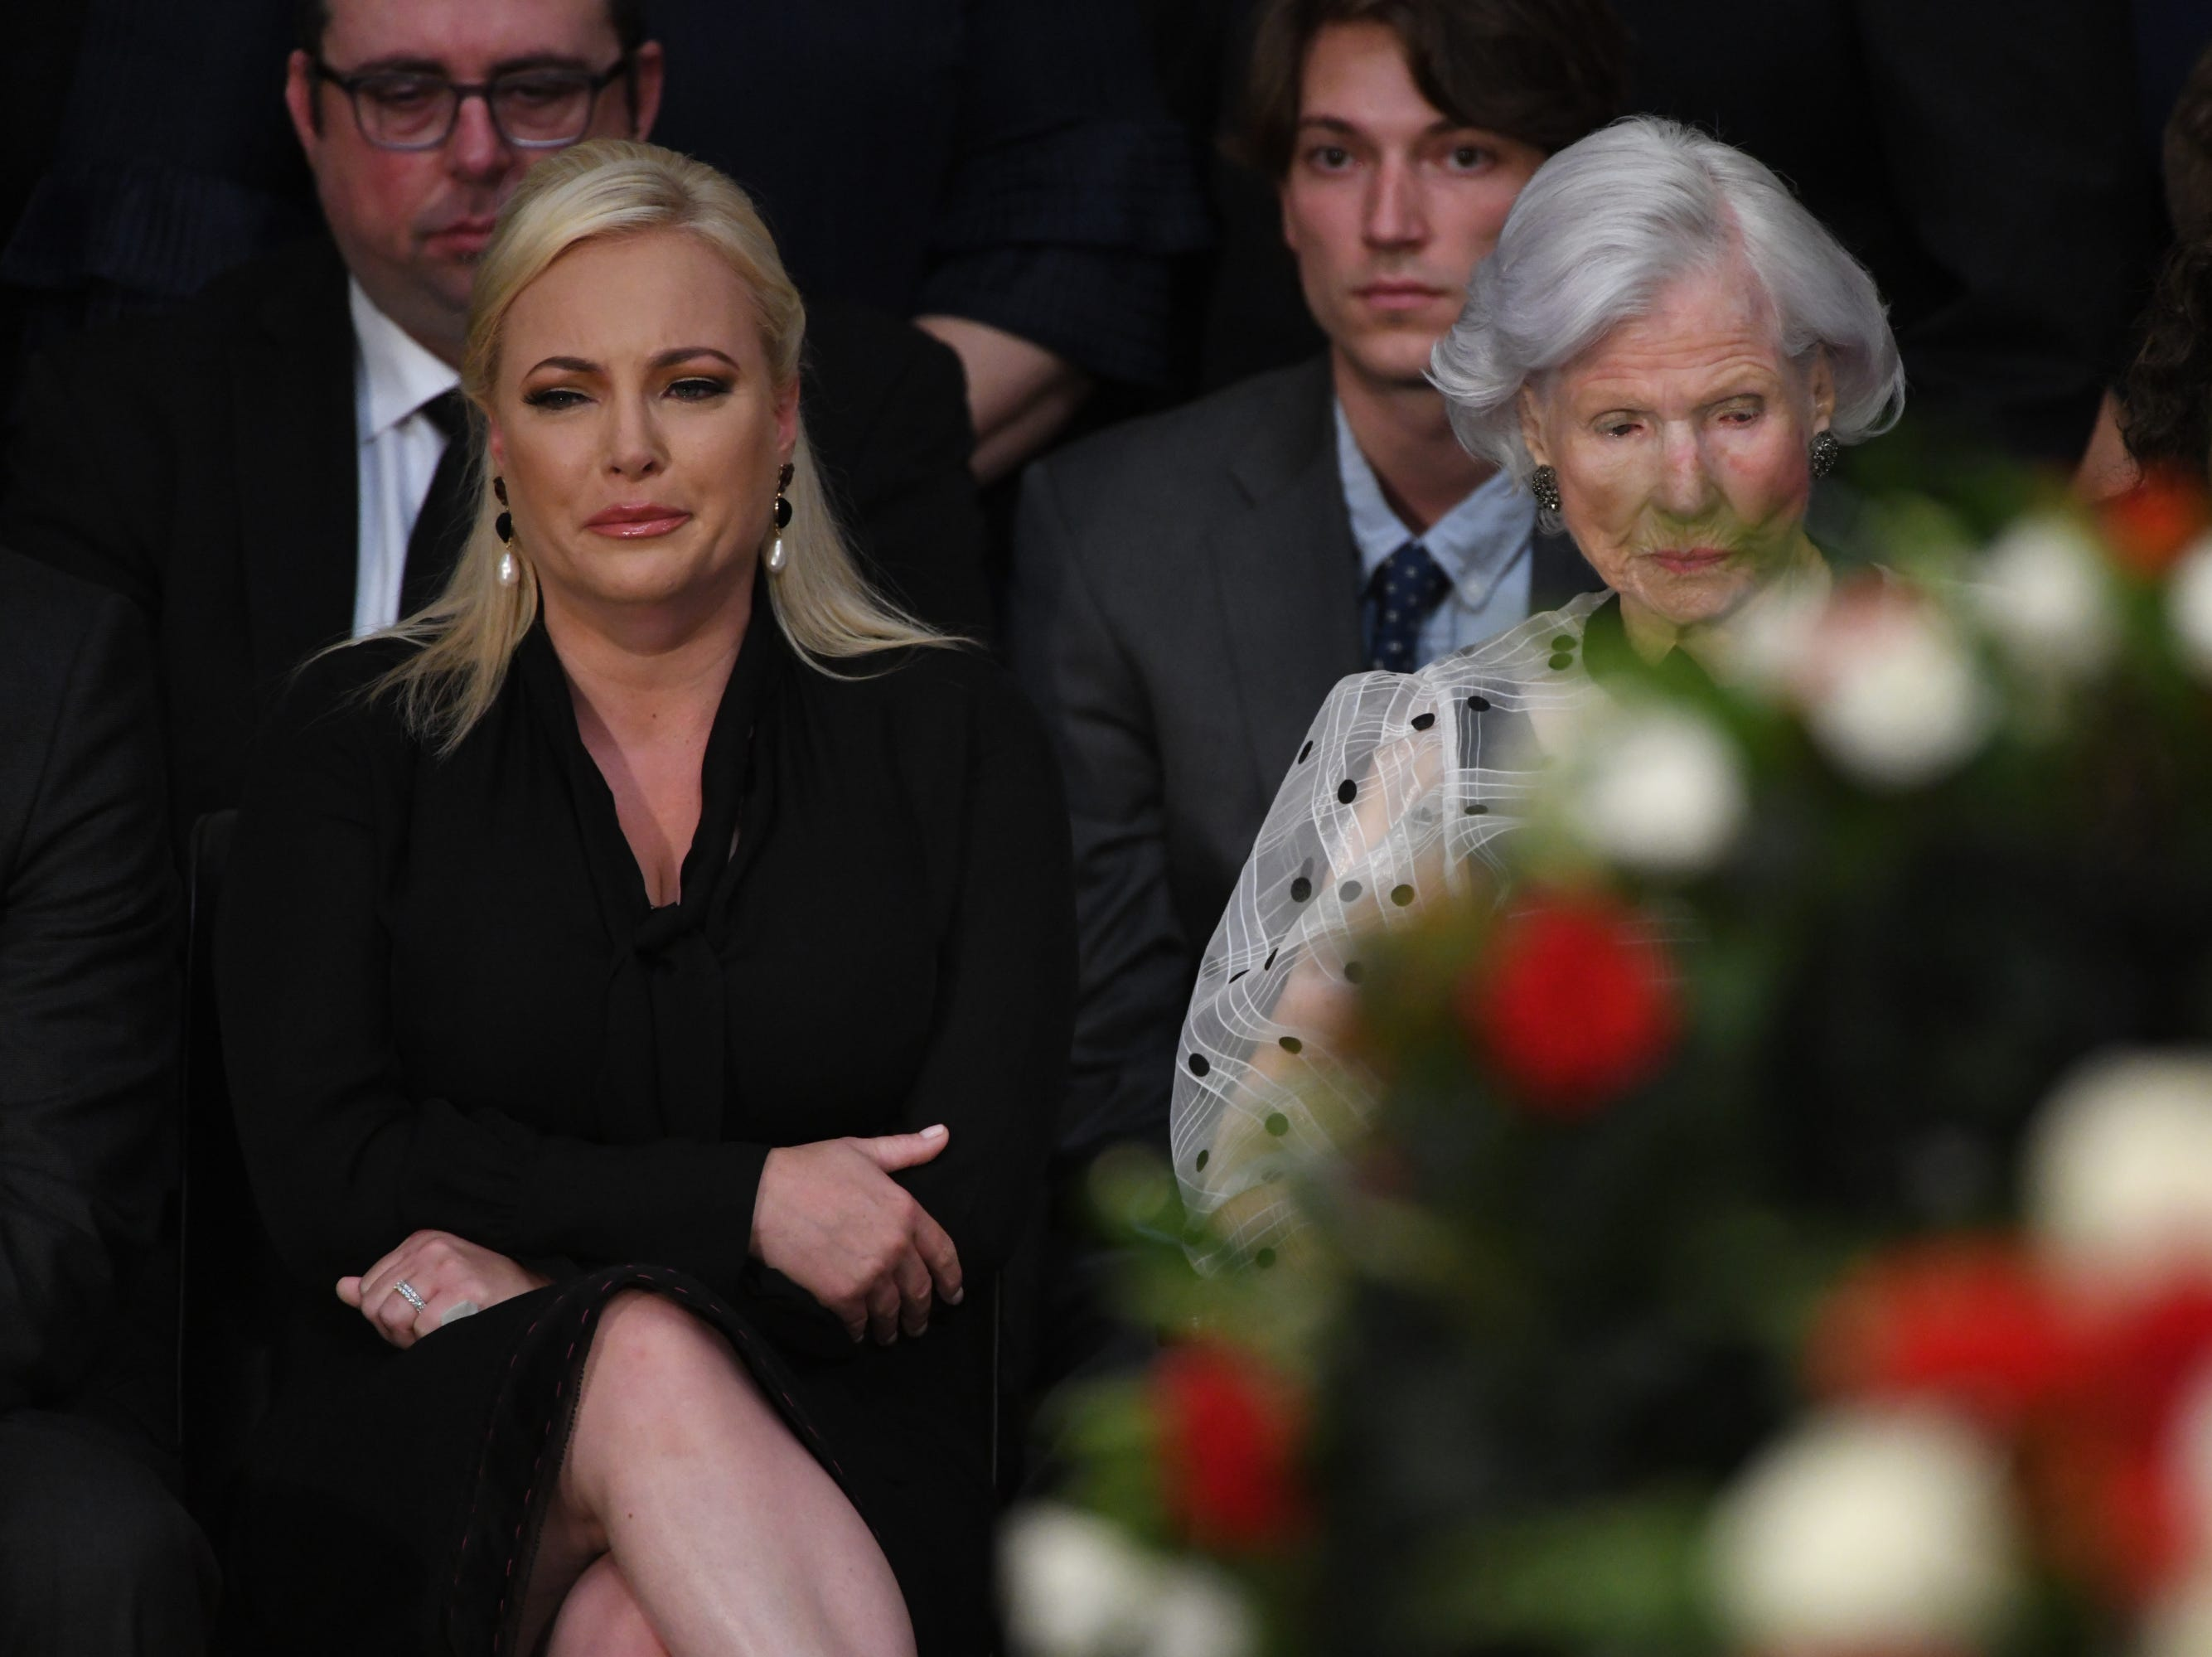 Cindy and Roberta McCain look on during a memorial for Sen. John McCain as he lies in state at the U.S. Capitol in Washington on Aug. 31, 2018 in Washington.